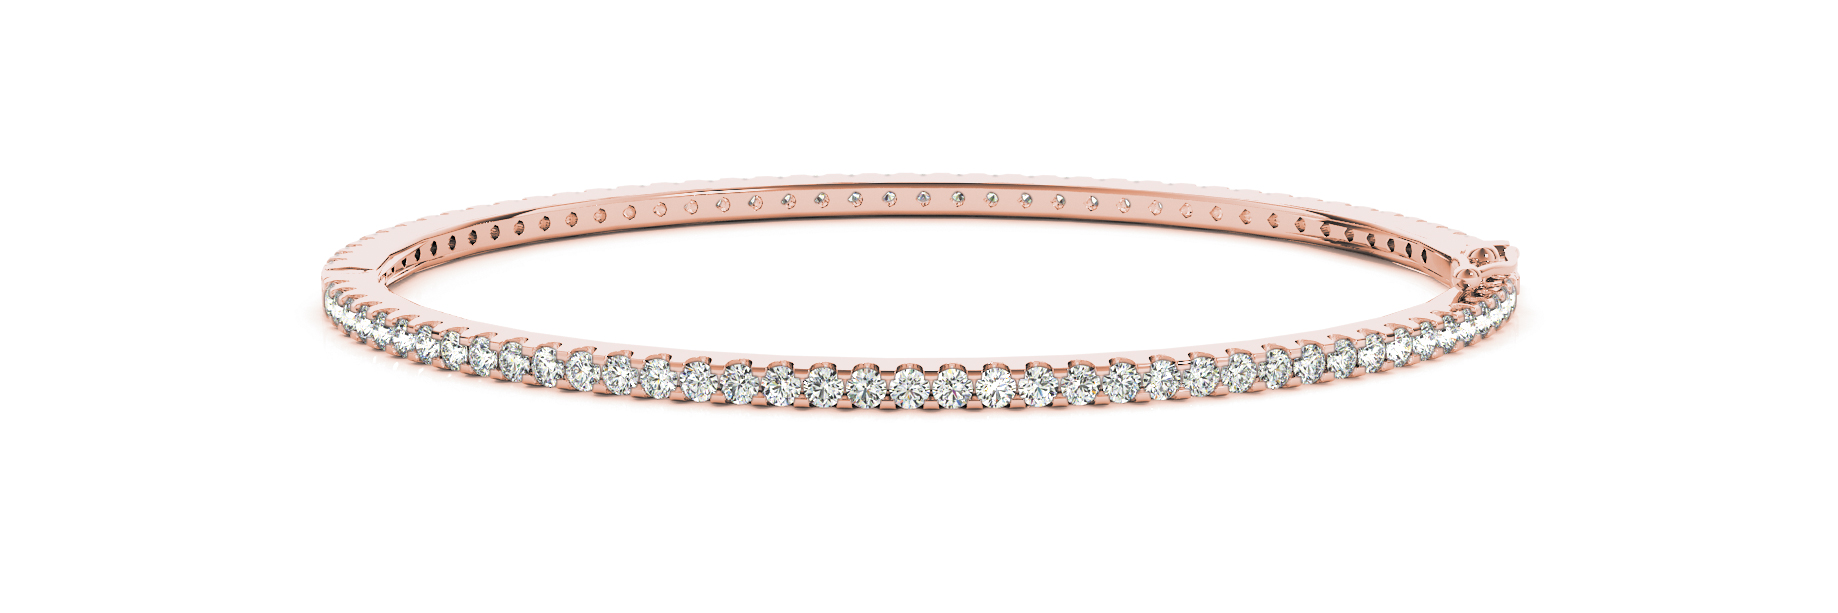 2.34 Carat Round Diamond Bangle in Rose Gold